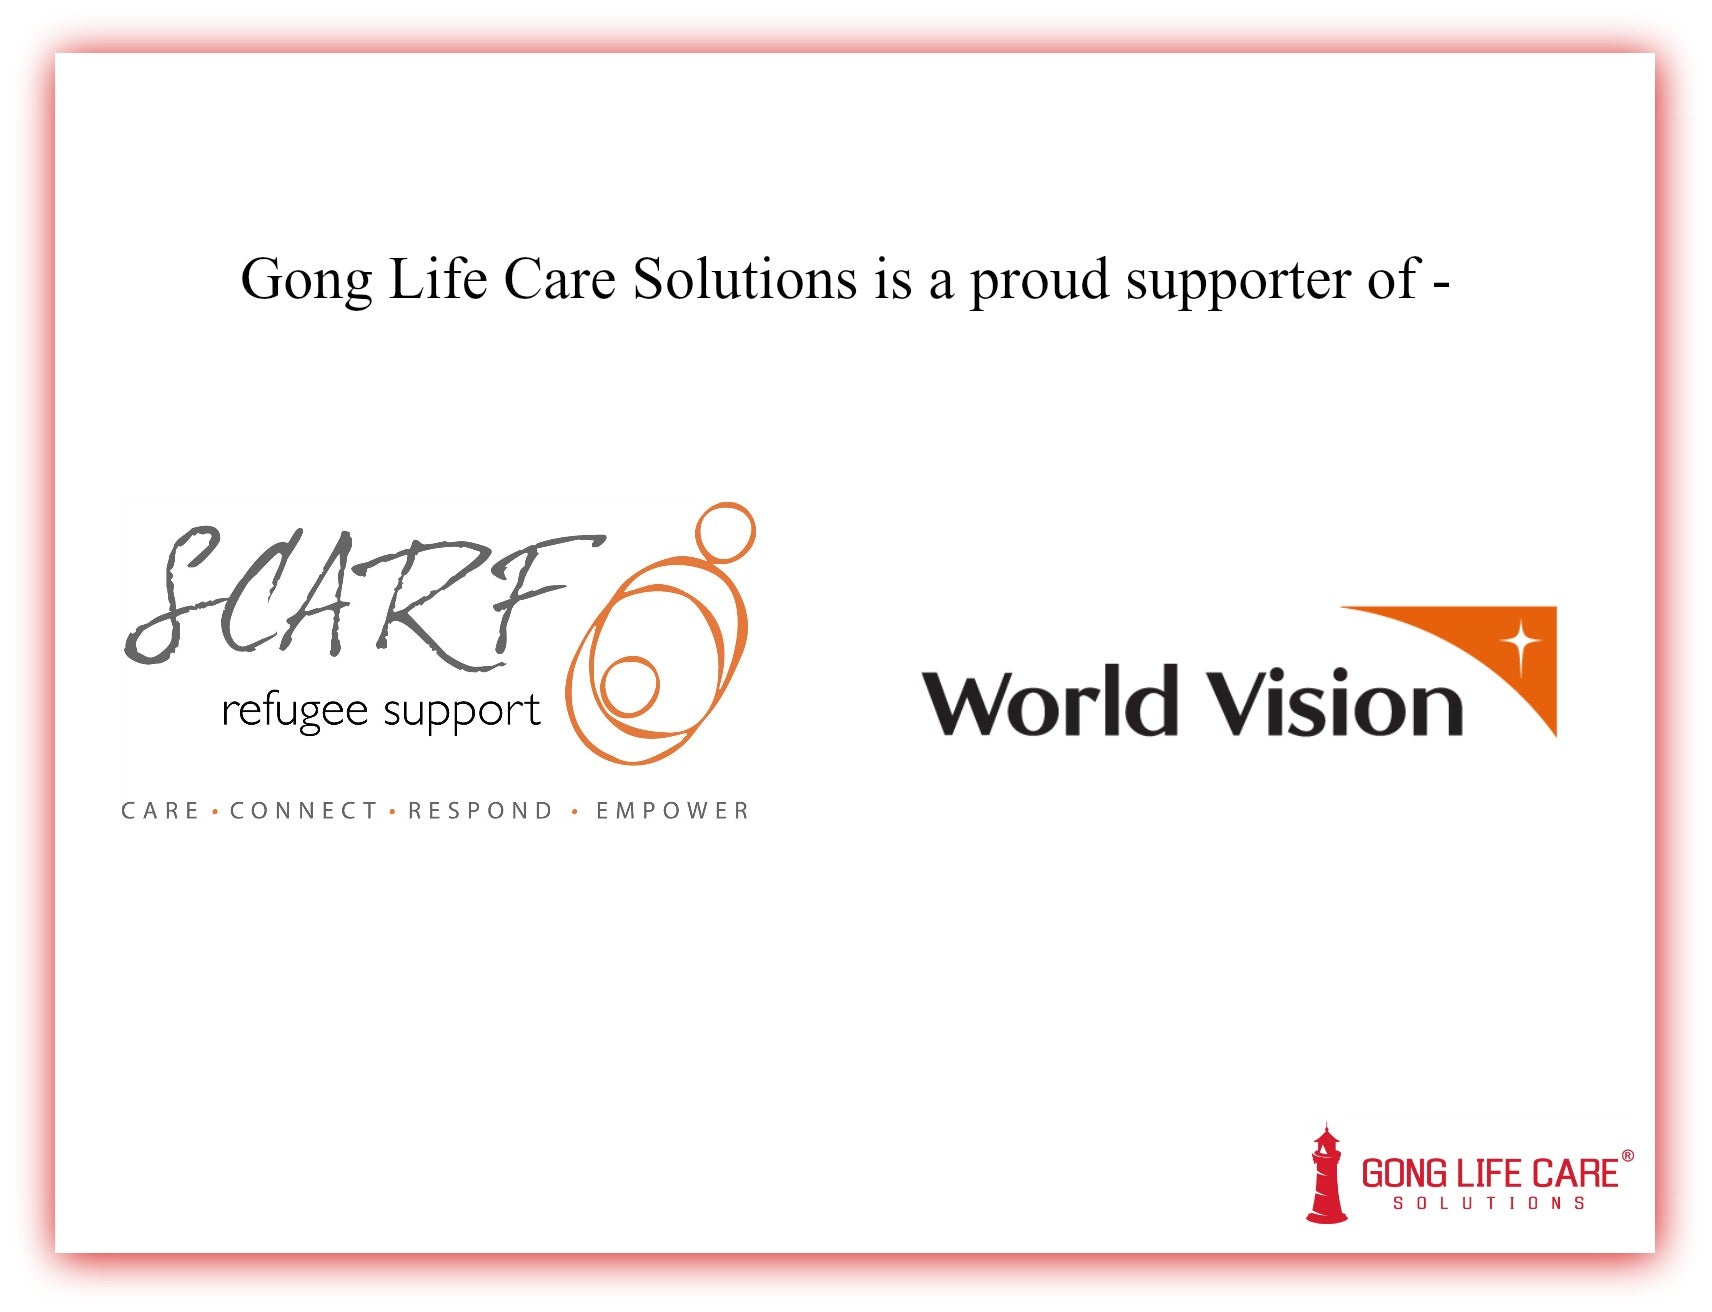 Gong Life Care Solutions, Strategic Community Assistance for Refugee Families, World Vision